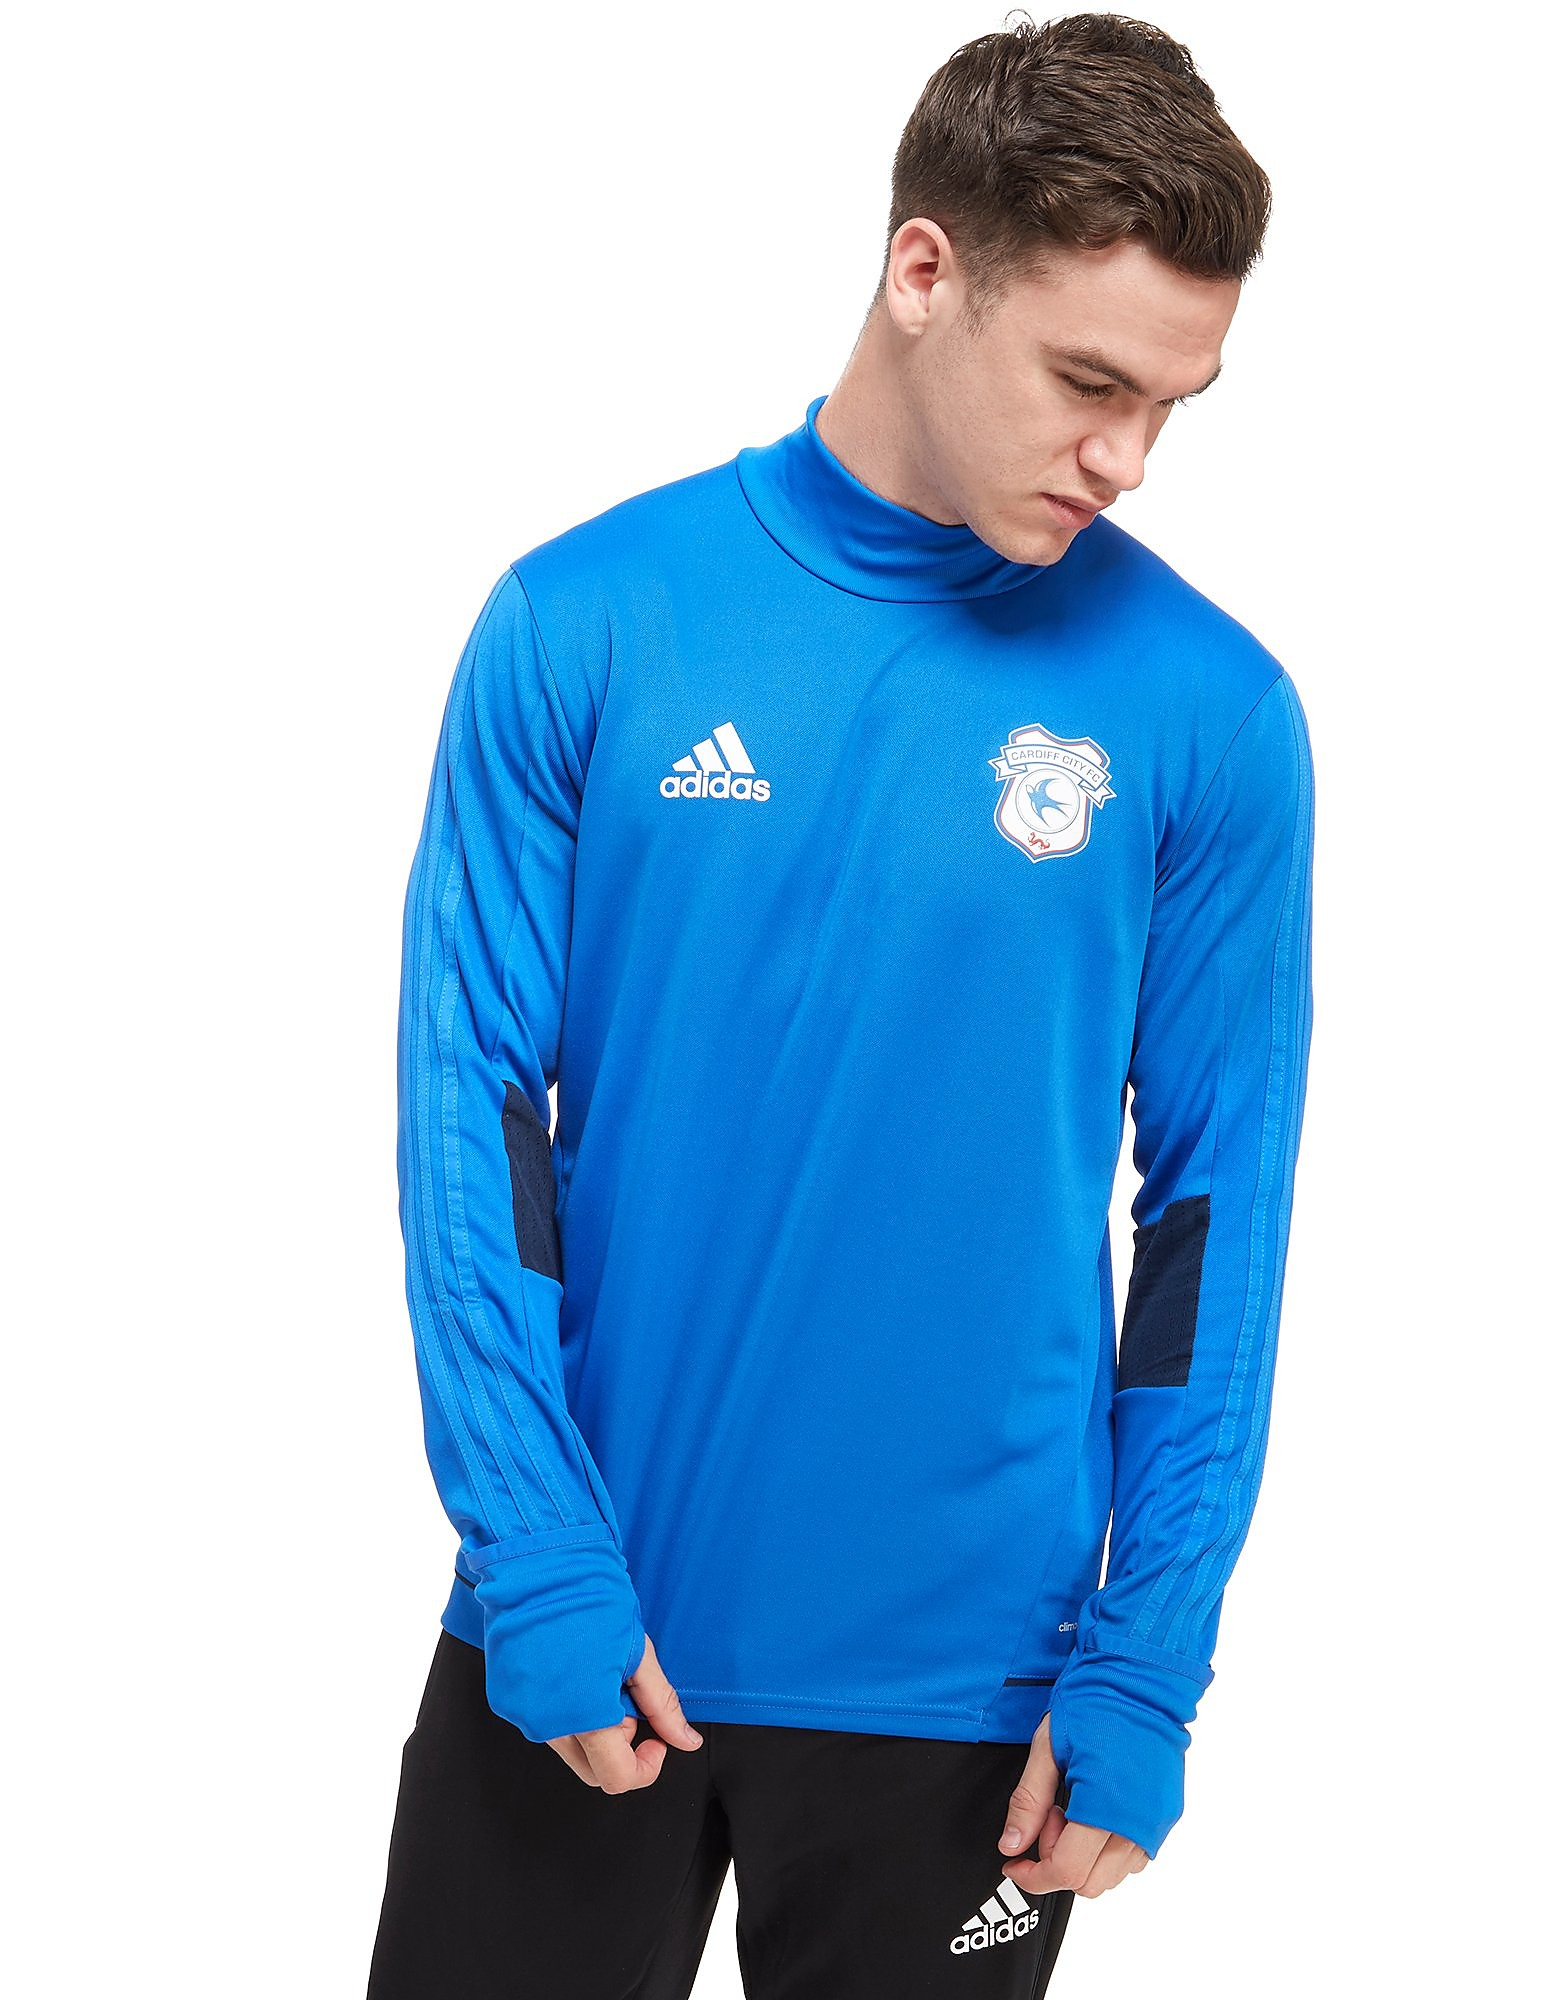 adidas Cardiff City FC 2017 Training Top